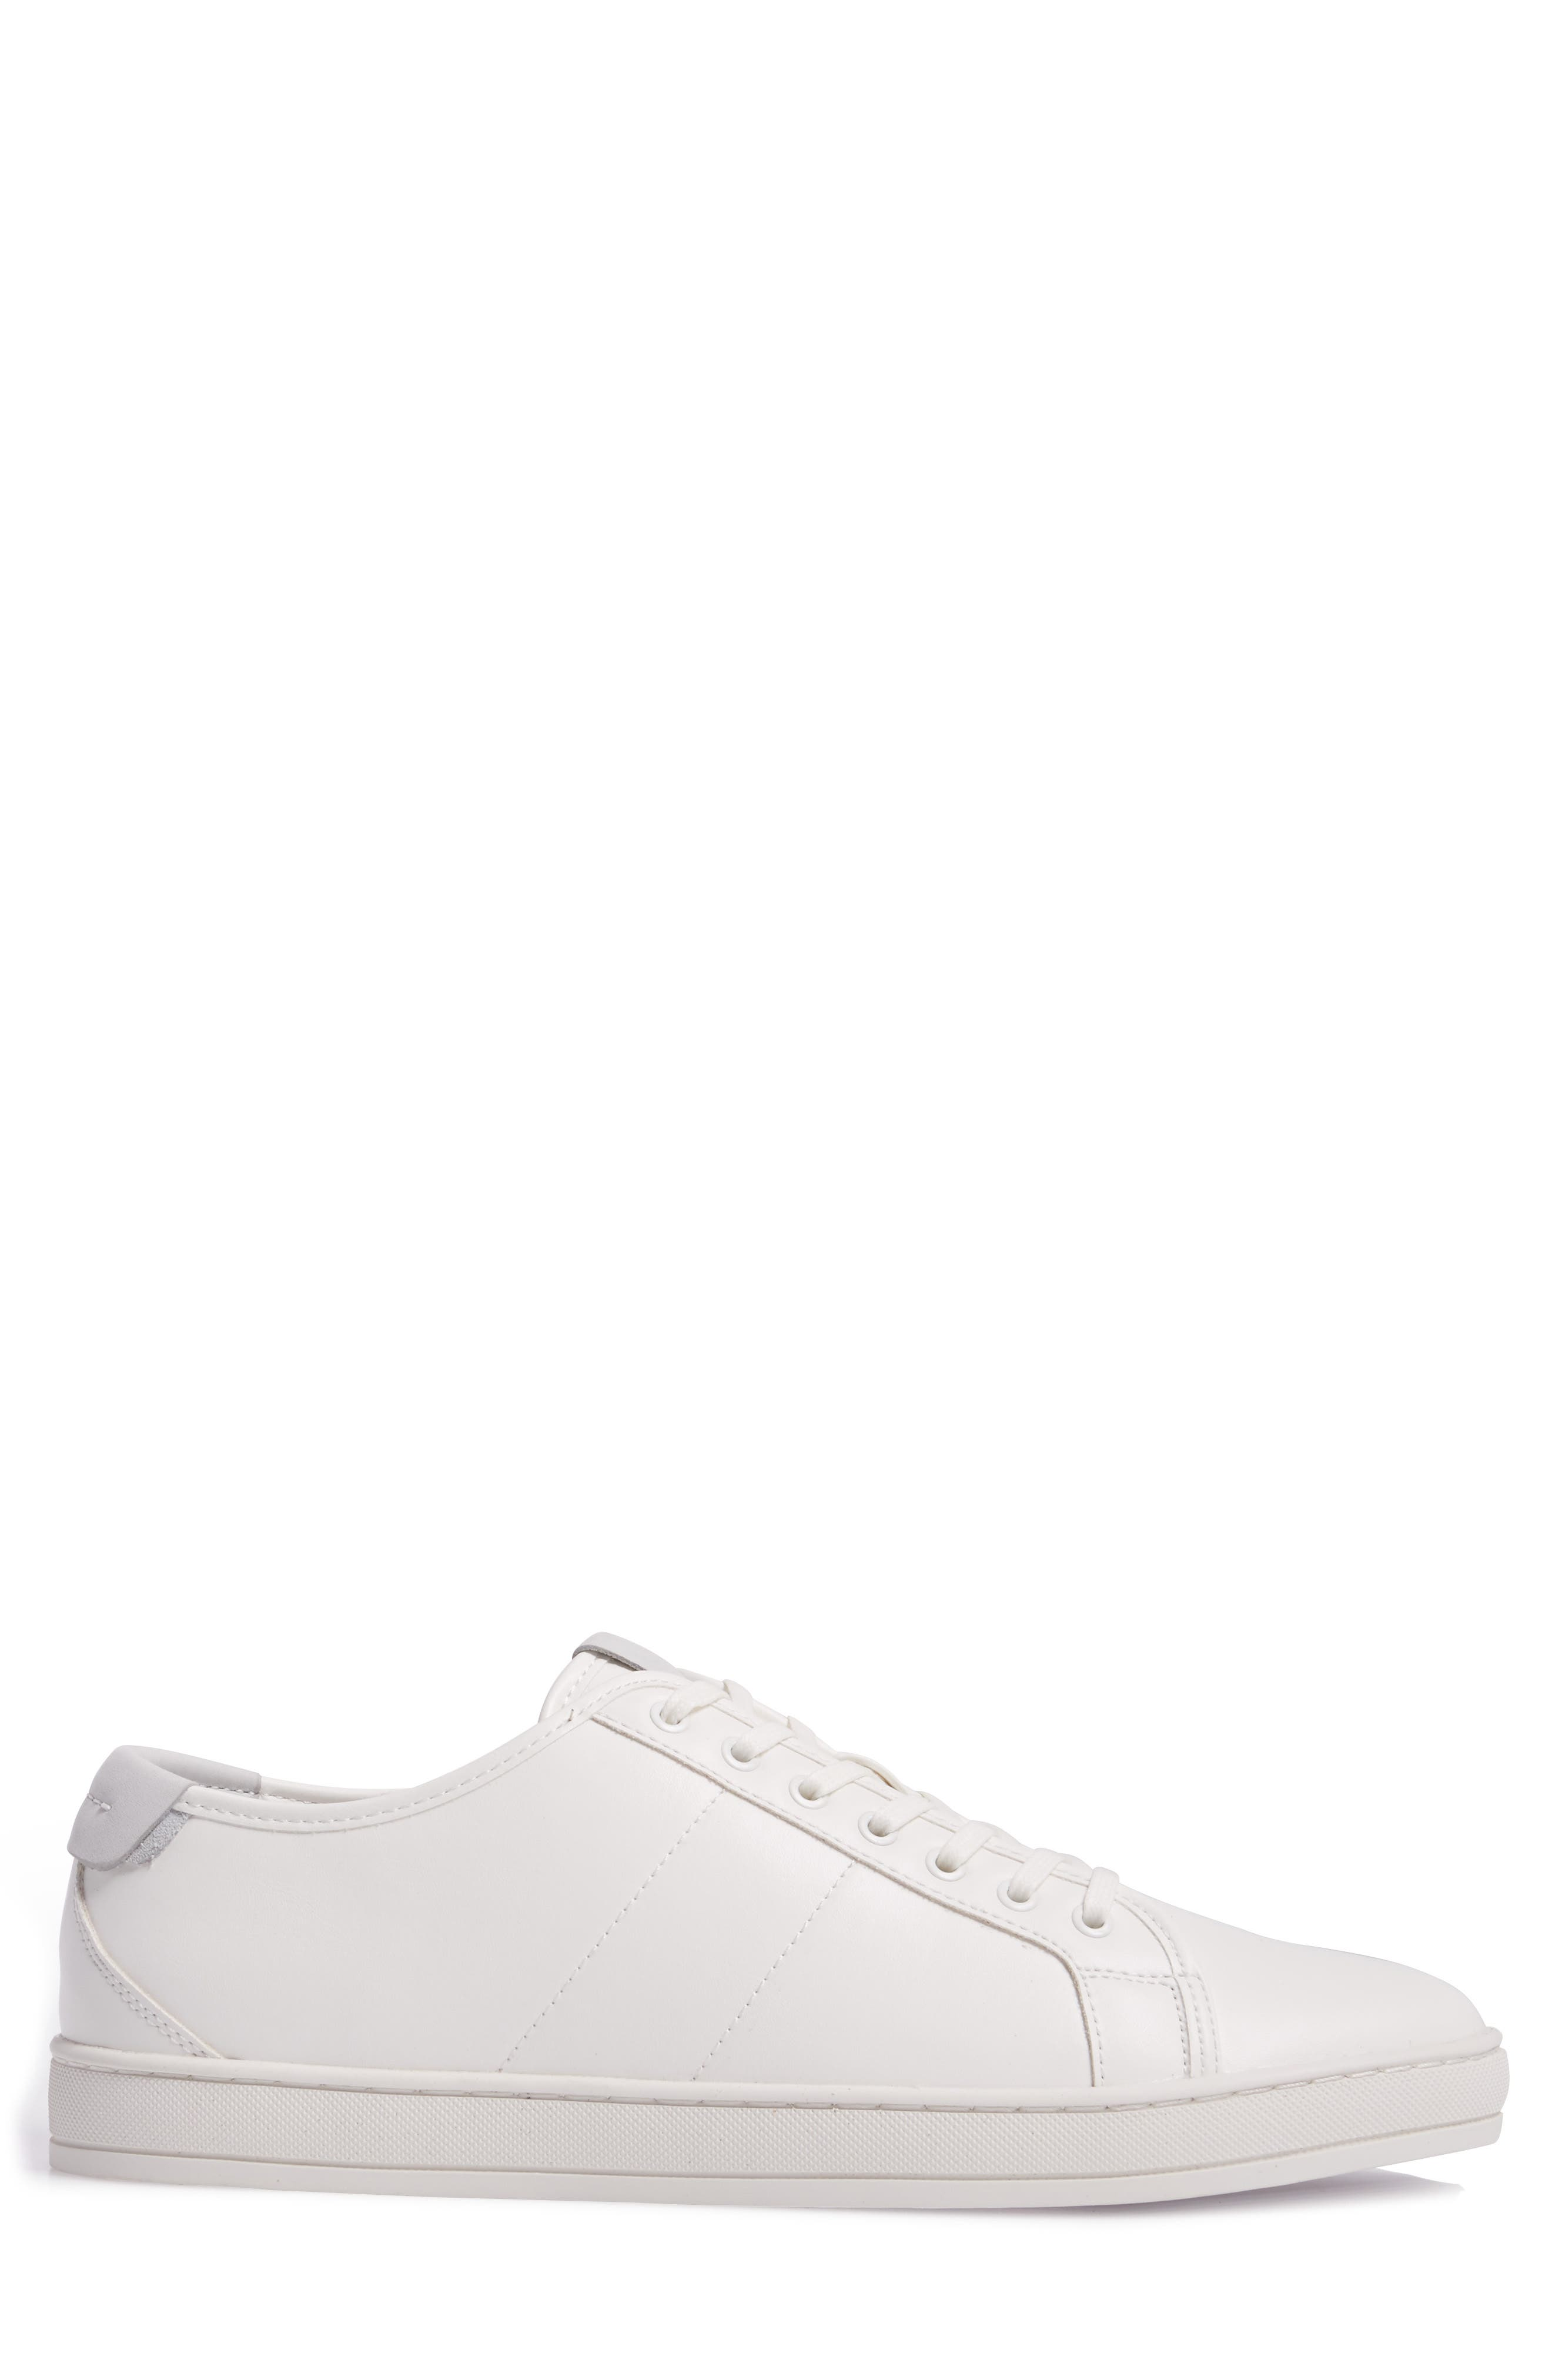 Delello Low-Top Sneaker,                             Alternate thumbnail 6, color,